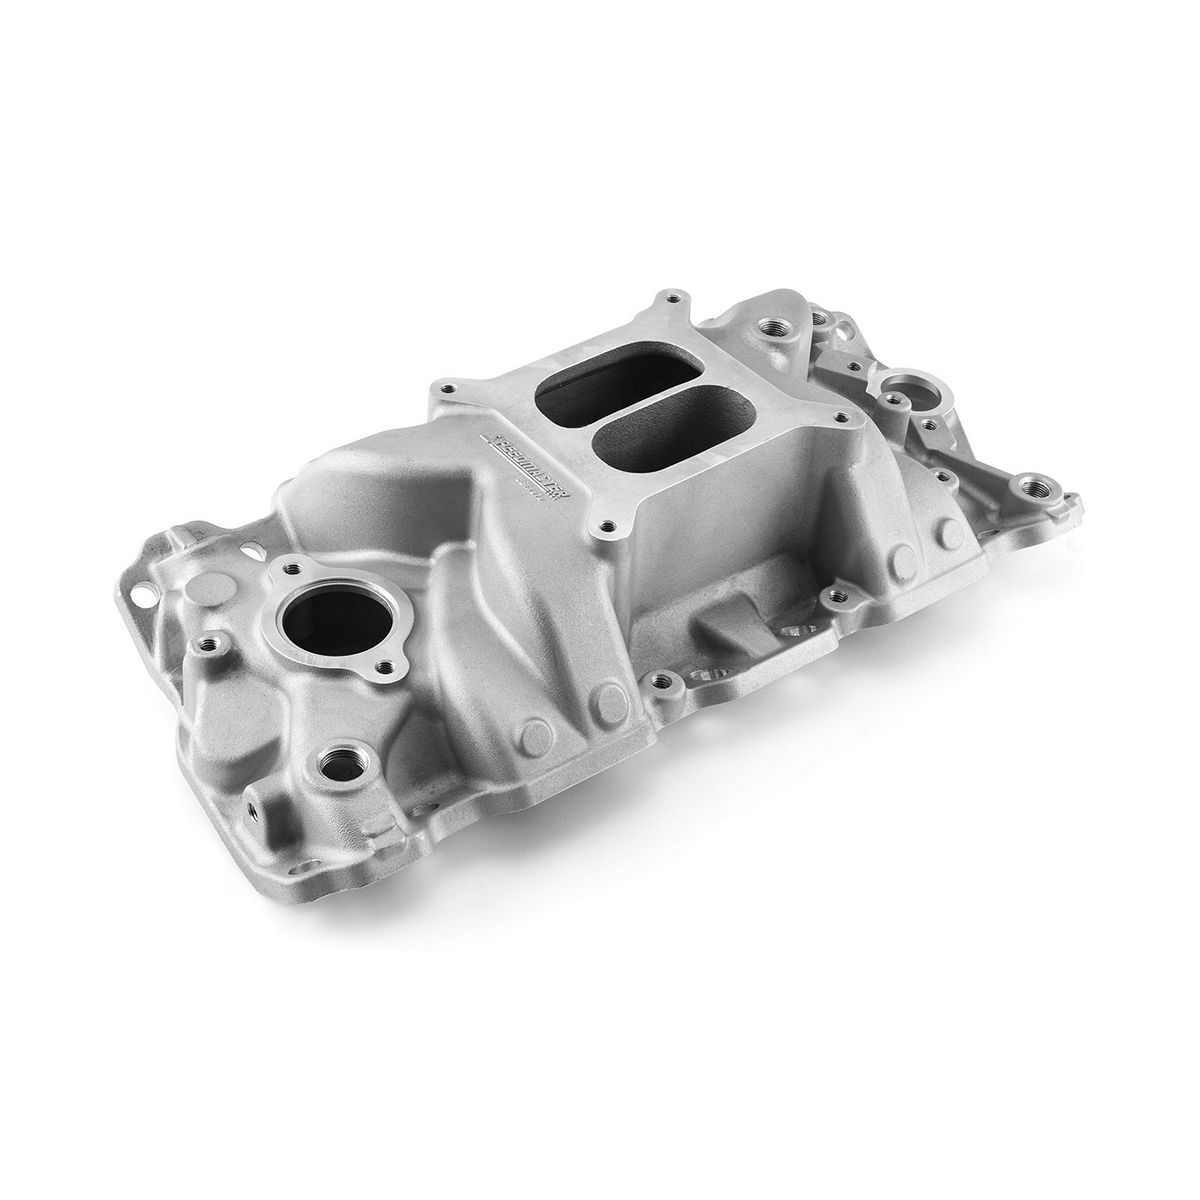 Speedmaster 1-147-031 Intake Manifold, MidRise Air, Square Bore, Dual Plane, Aluminum, Natural, Small Block Chevy, Each